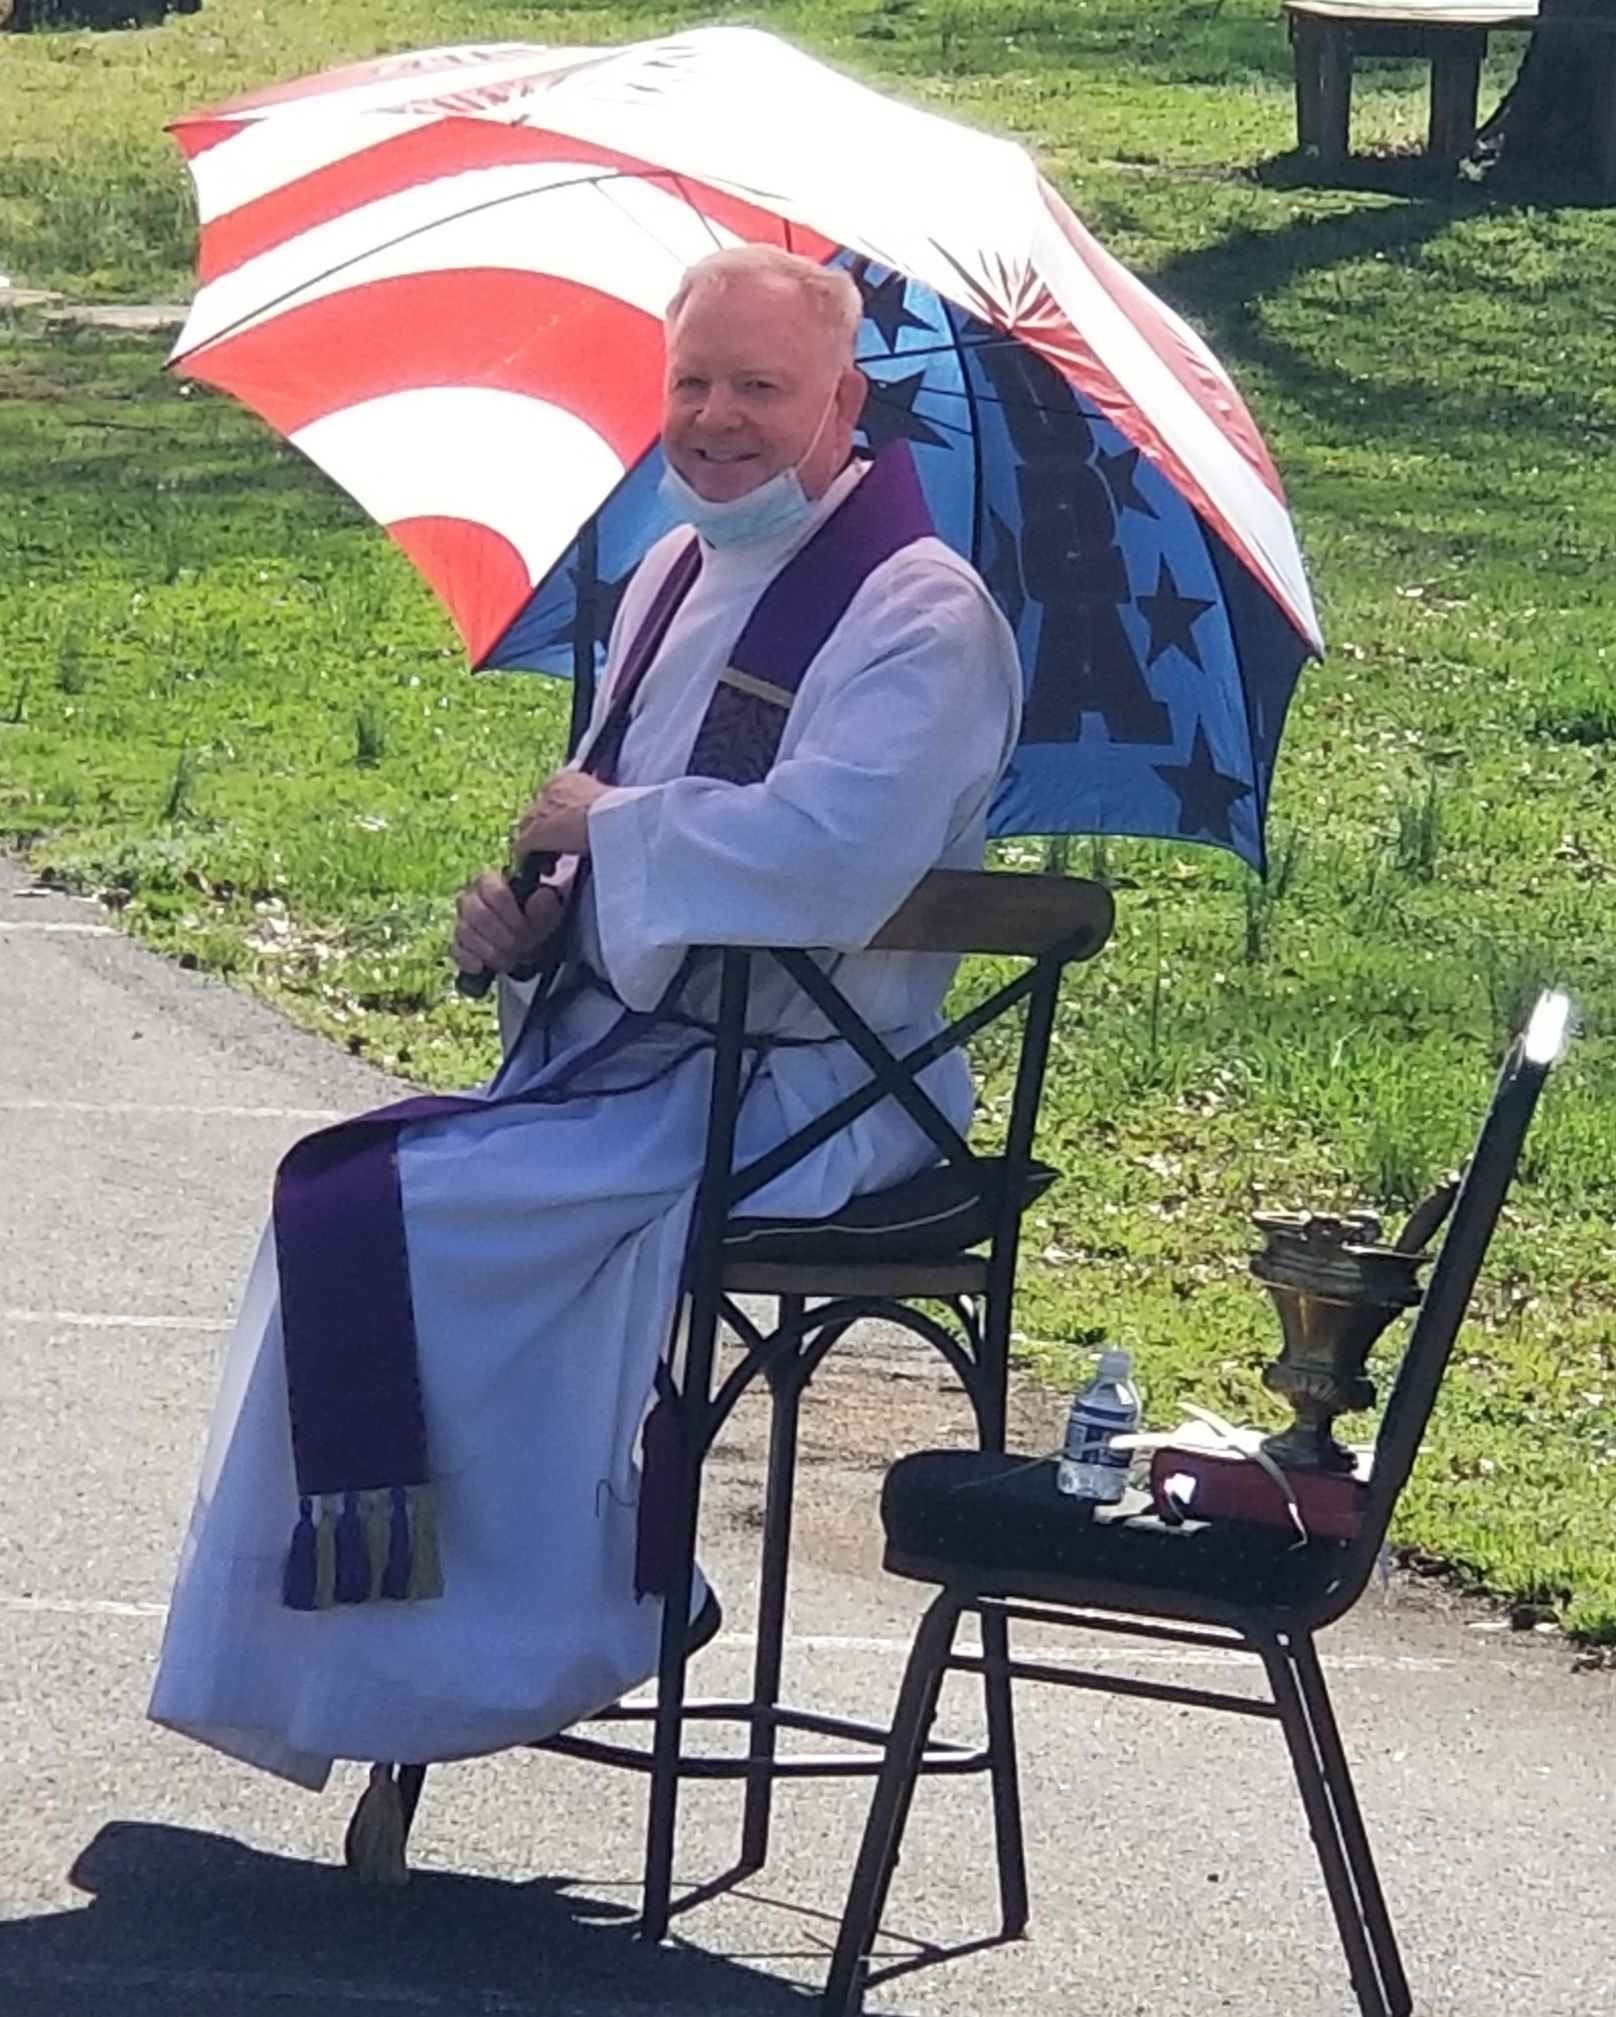 A priest sitting in a chair under an umbrella in a parking lot